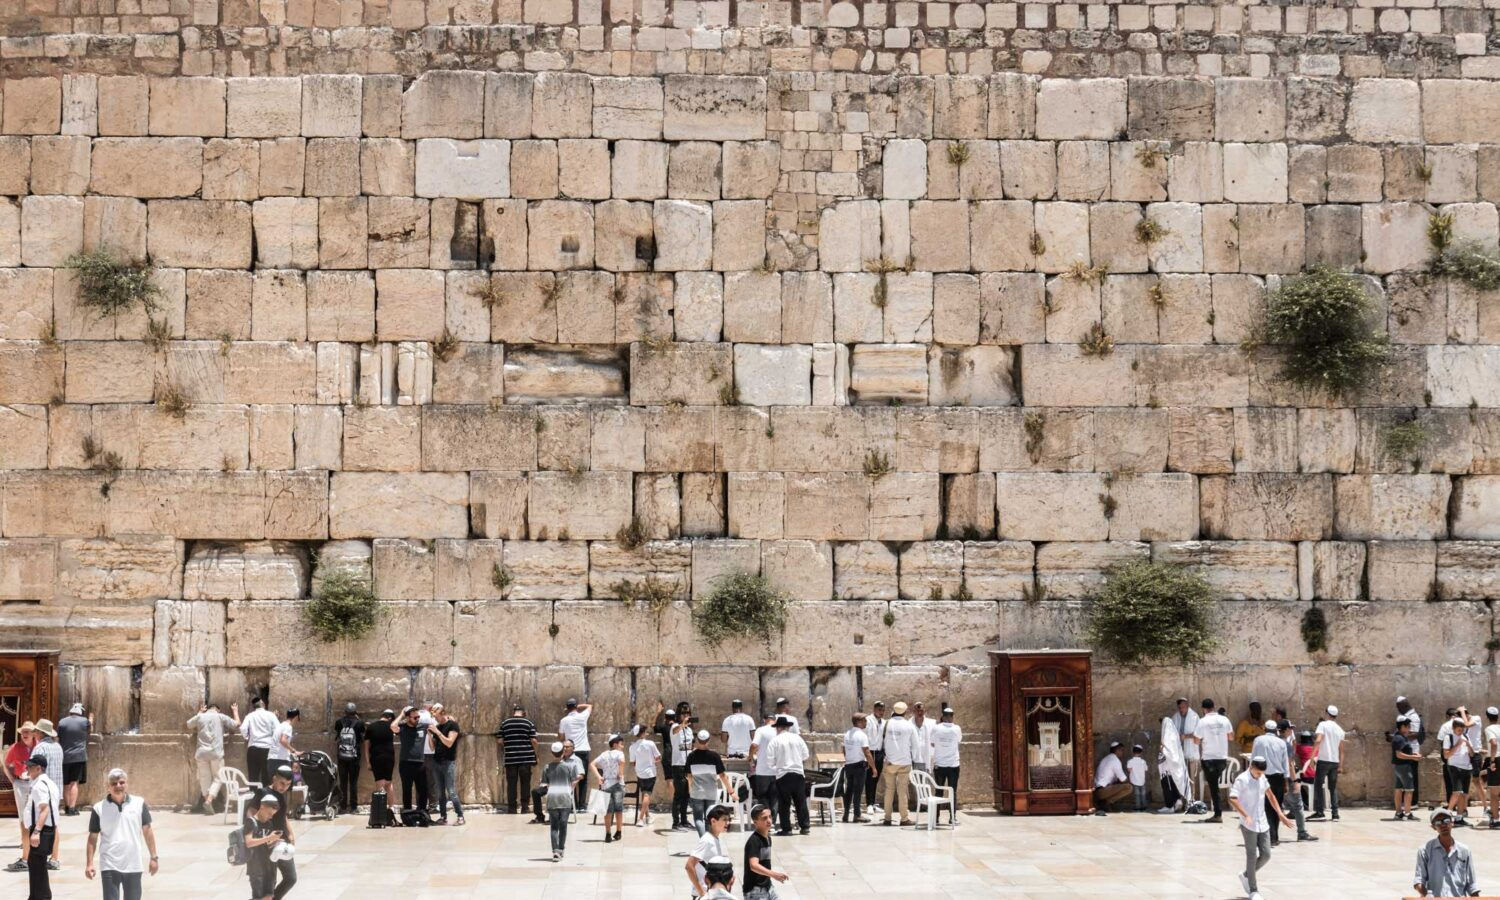 The Wailing Wall during our 2 days in Jerusalem itinerary